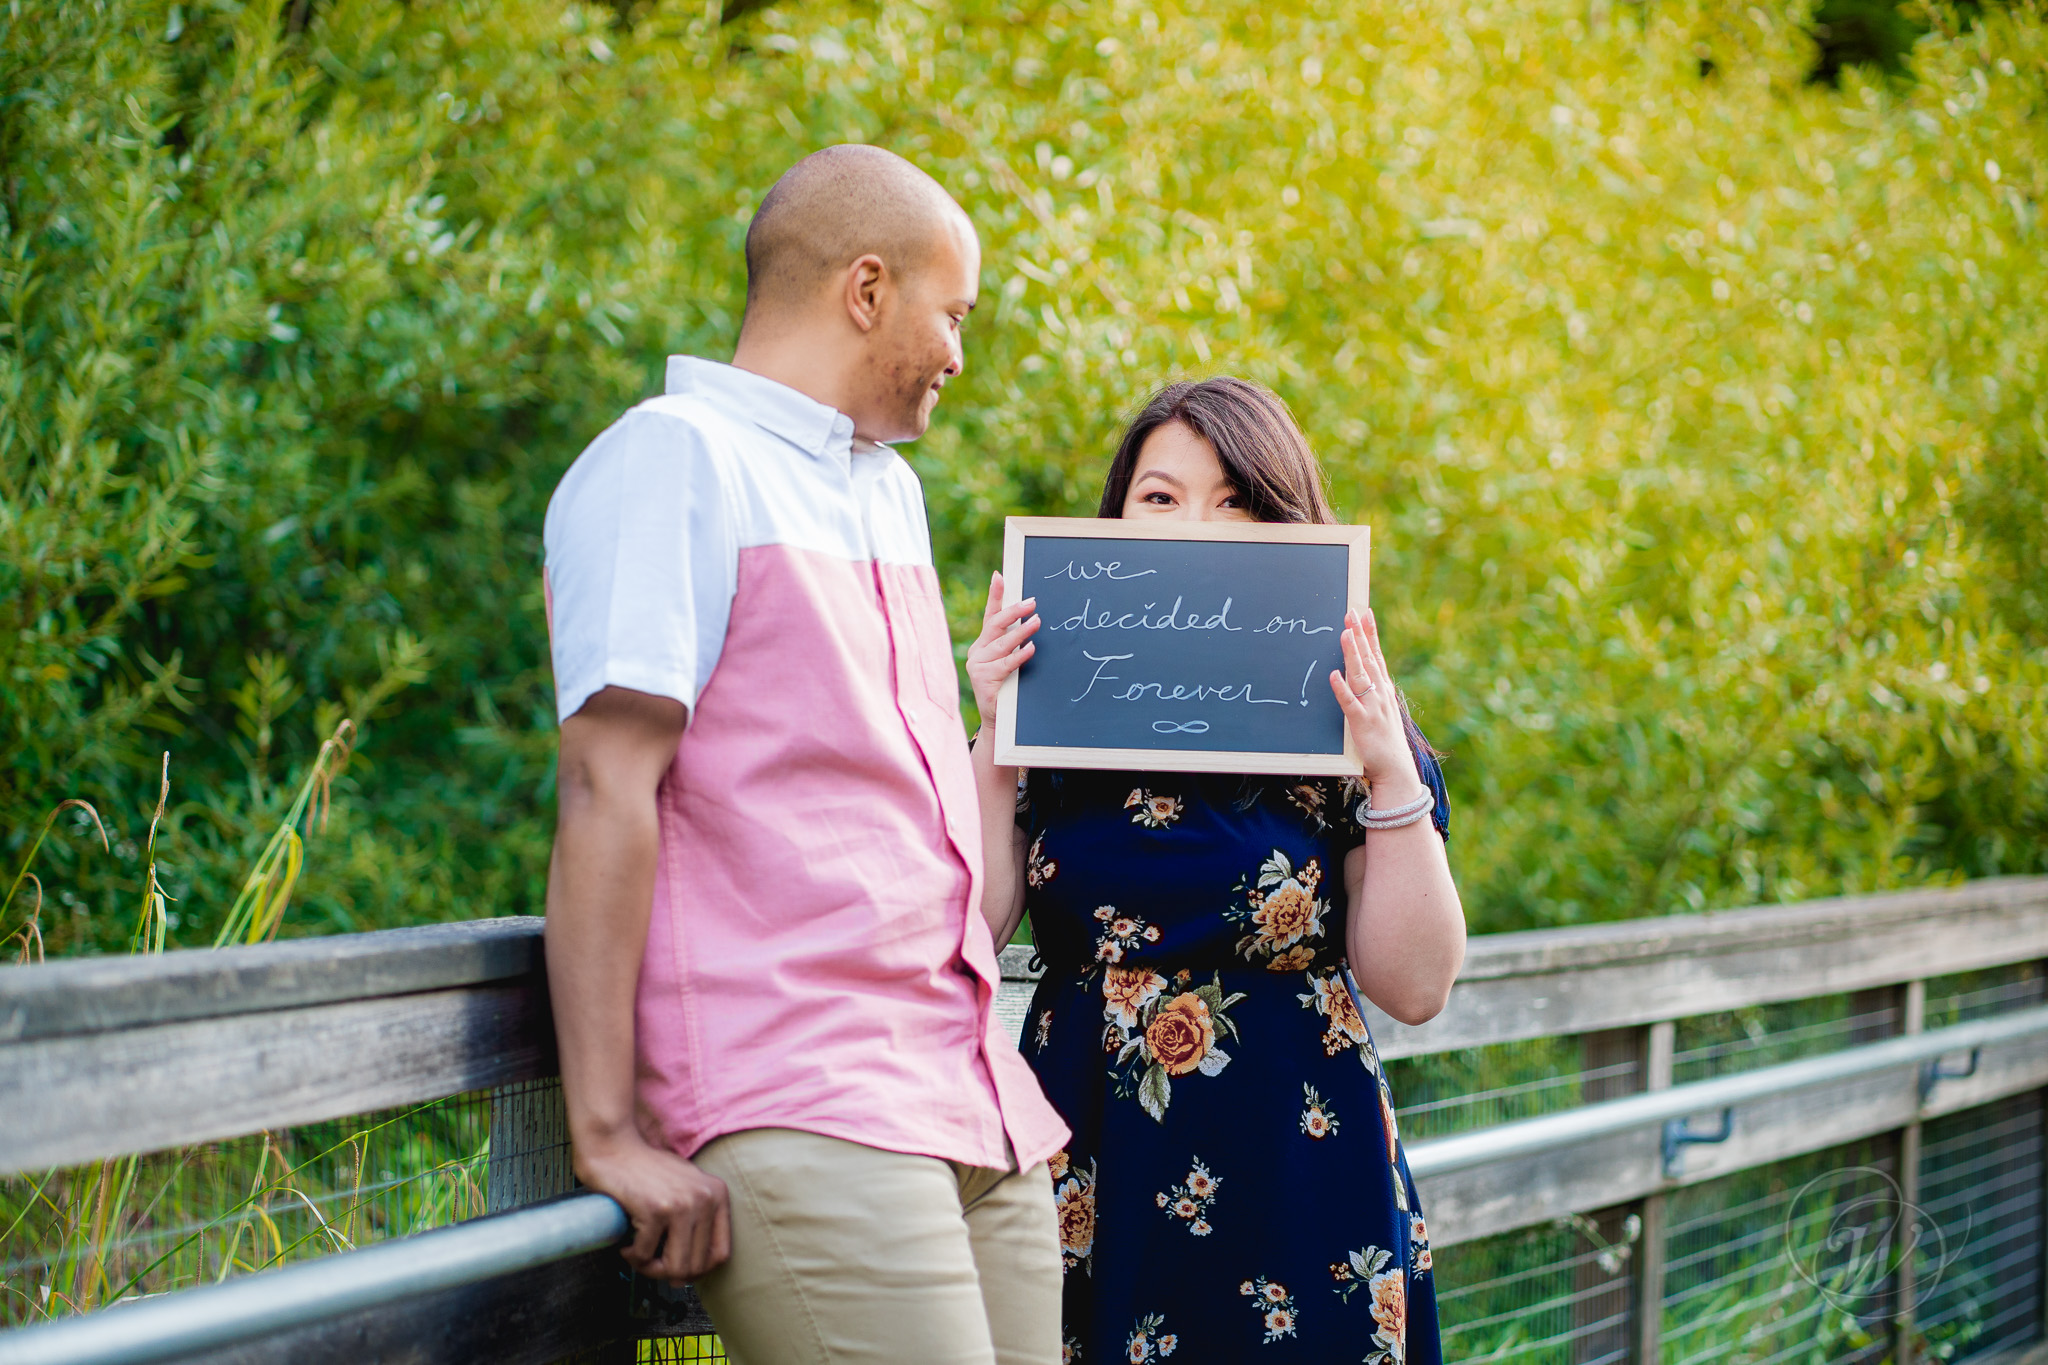 2019.06.16_Mosara-Brandon_Engagement_28.jpg